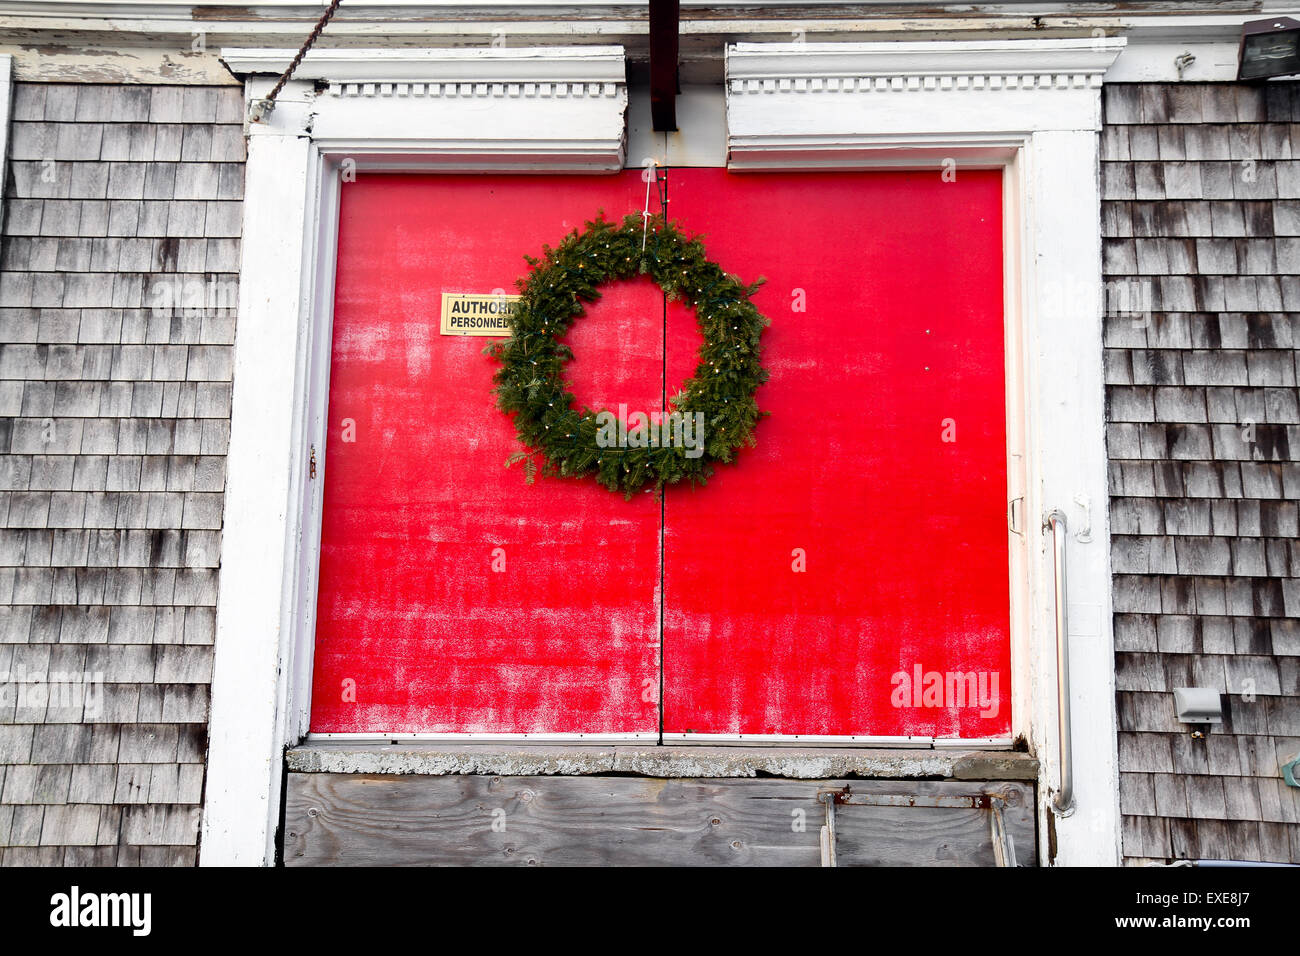 A holiday wreath on the red doors of a building at the Millway Marina, Barnstable Harbor, Barnstable, Cape Cod - Stock Image